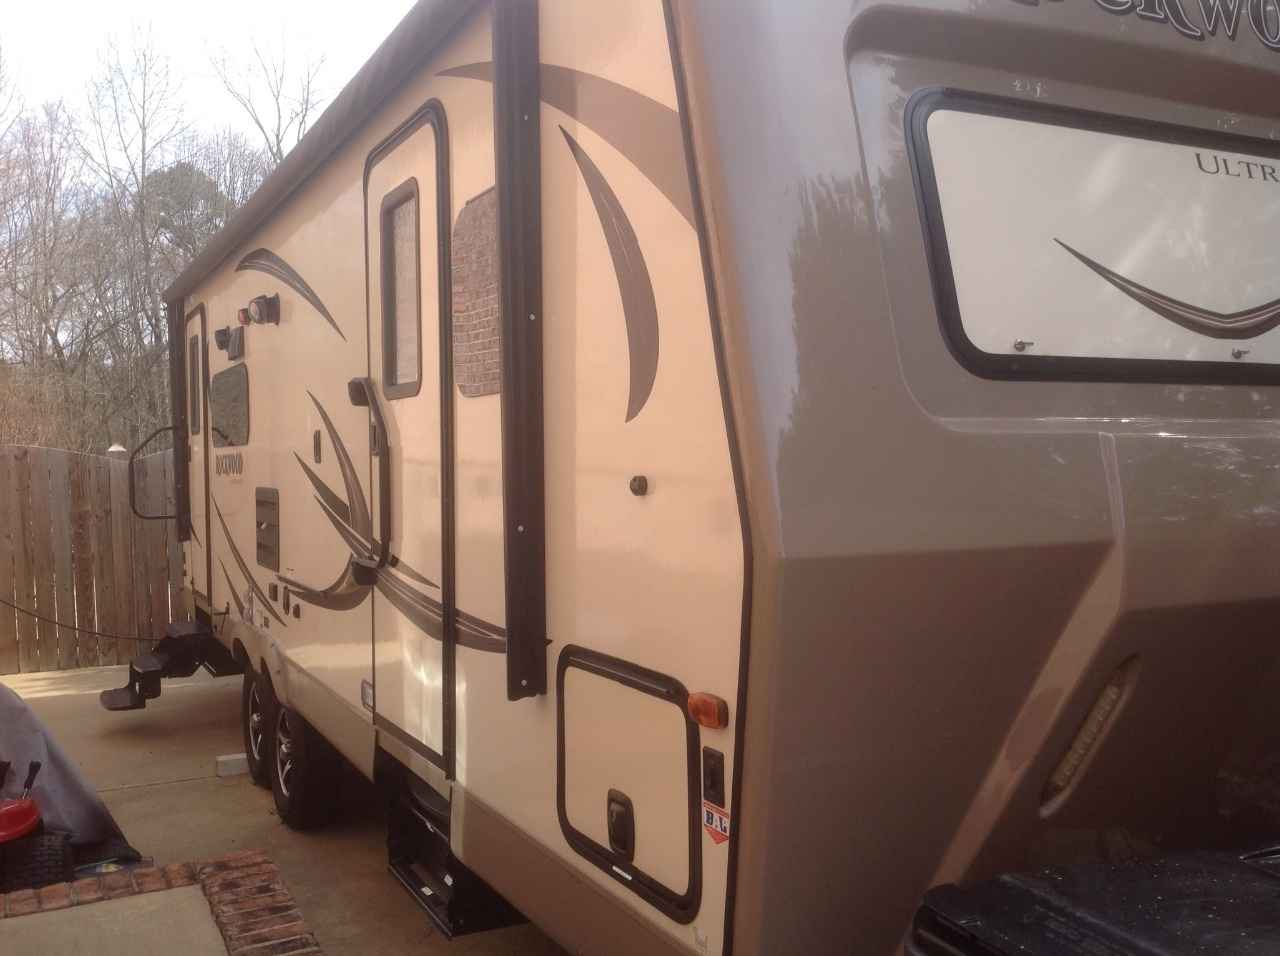 recreational vehicle market in north am Solar panel kits for rv - am solar has everything you need to make your rv solar powered, including solar panel kits for rv, diy rv and more sign in my account home complete solar kits complete solar kits lithium battery banks.